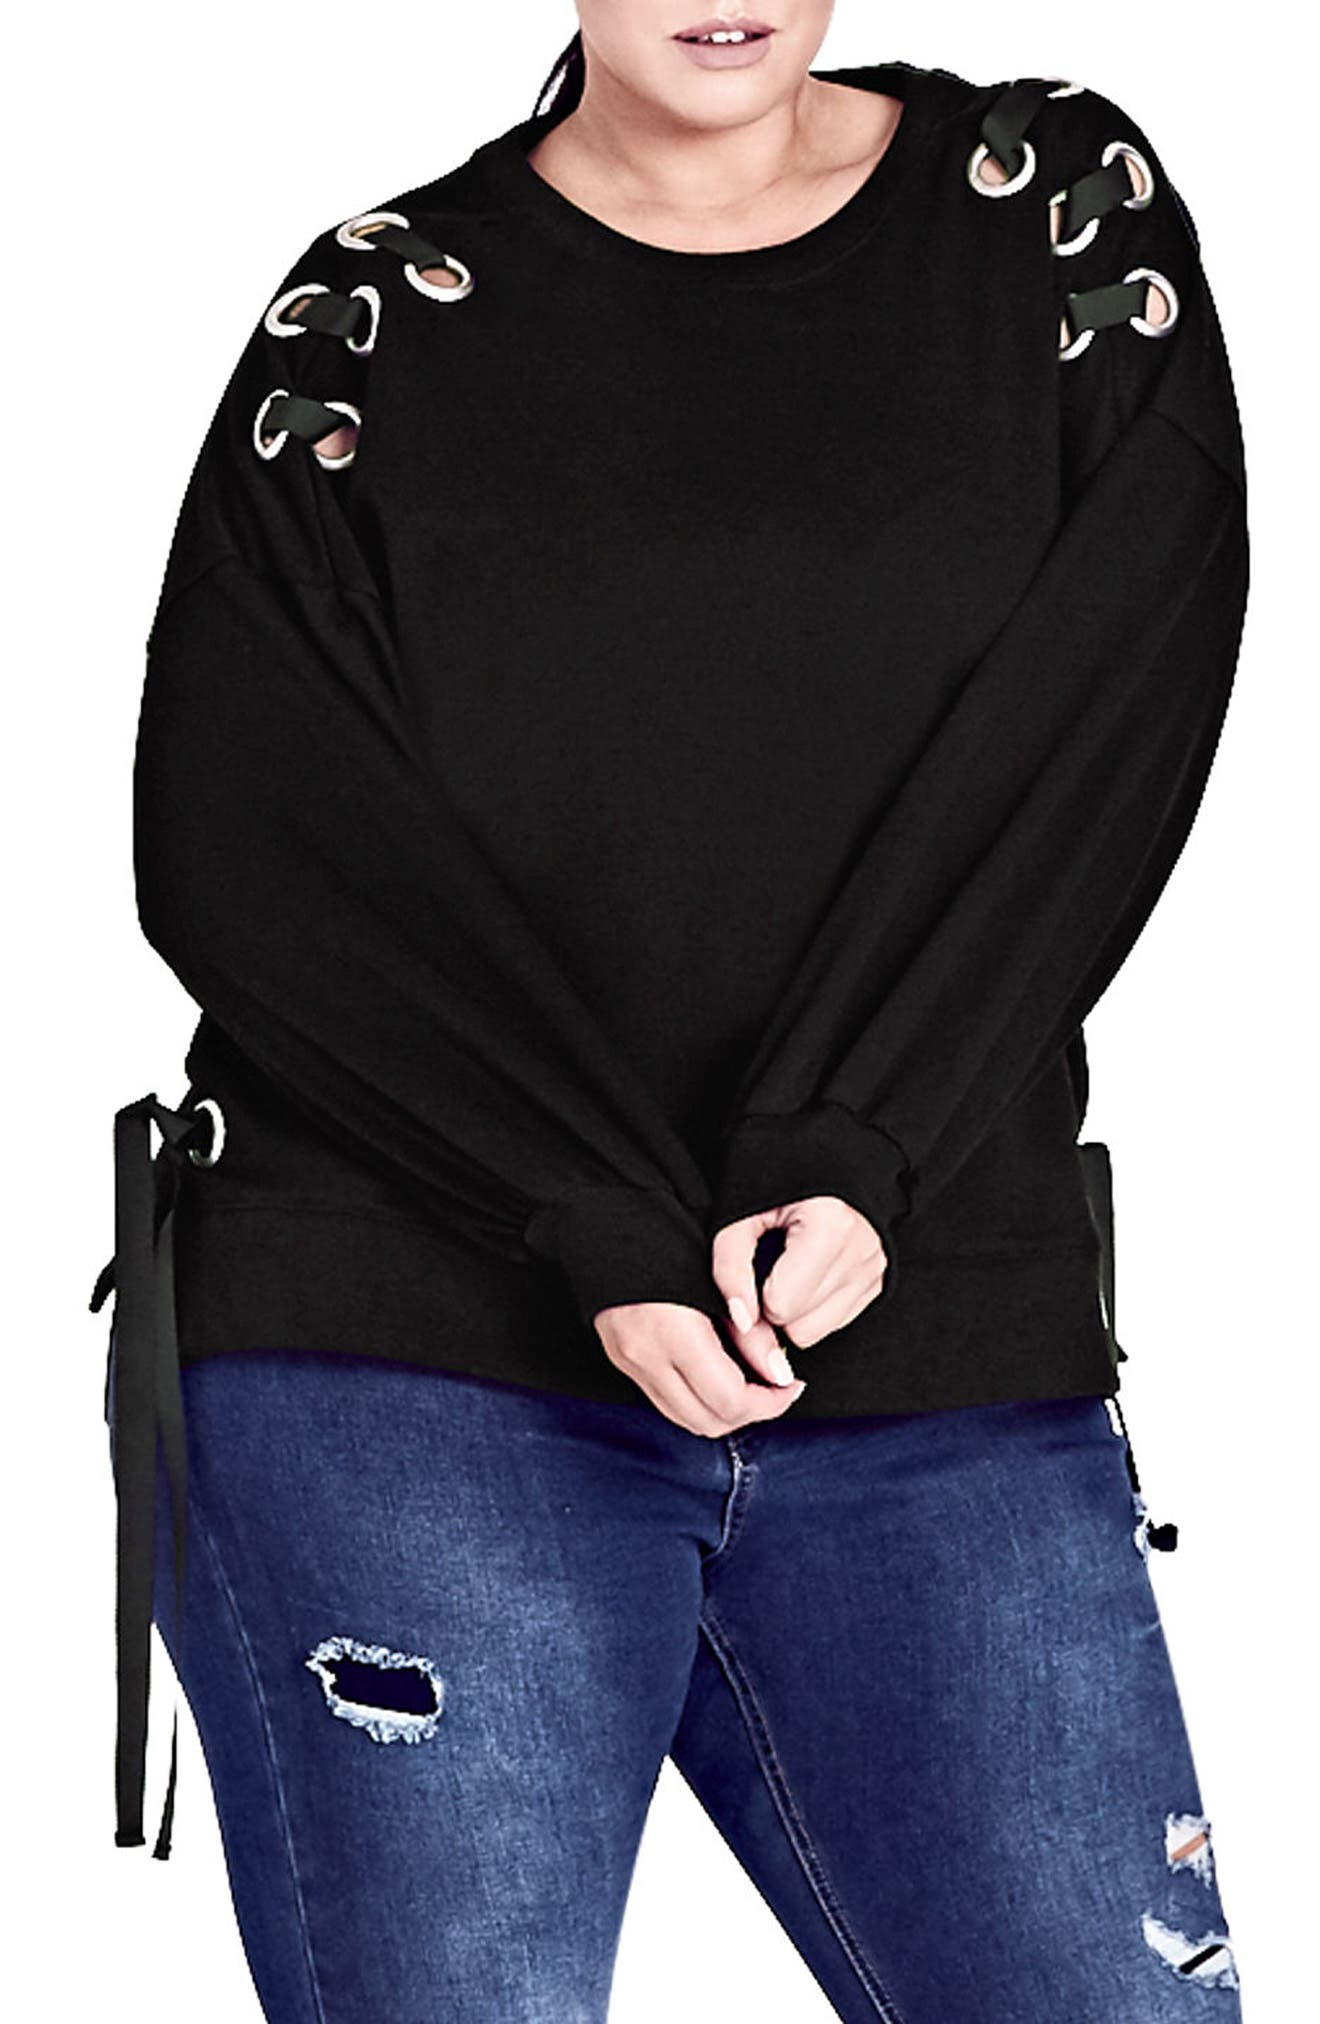 Ring Tie Stretch Cotton Top,                             Main thumbnail 1, color,                             001